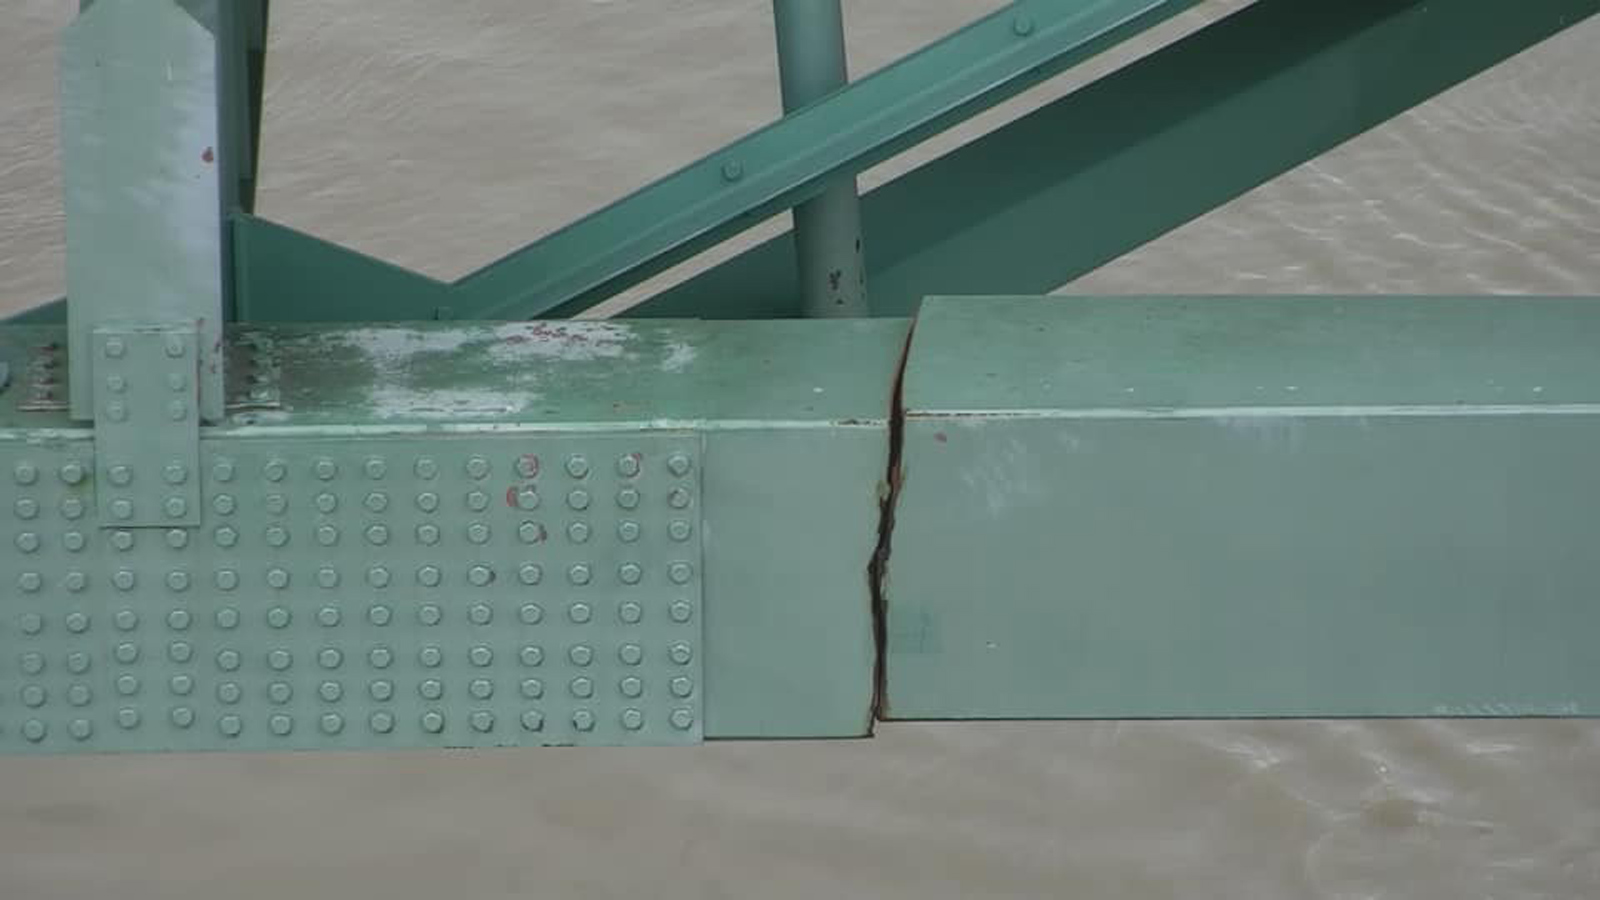 The repair of a vital Memphis bridge could take 2 months, chief engineer says. The impacts are already being felt